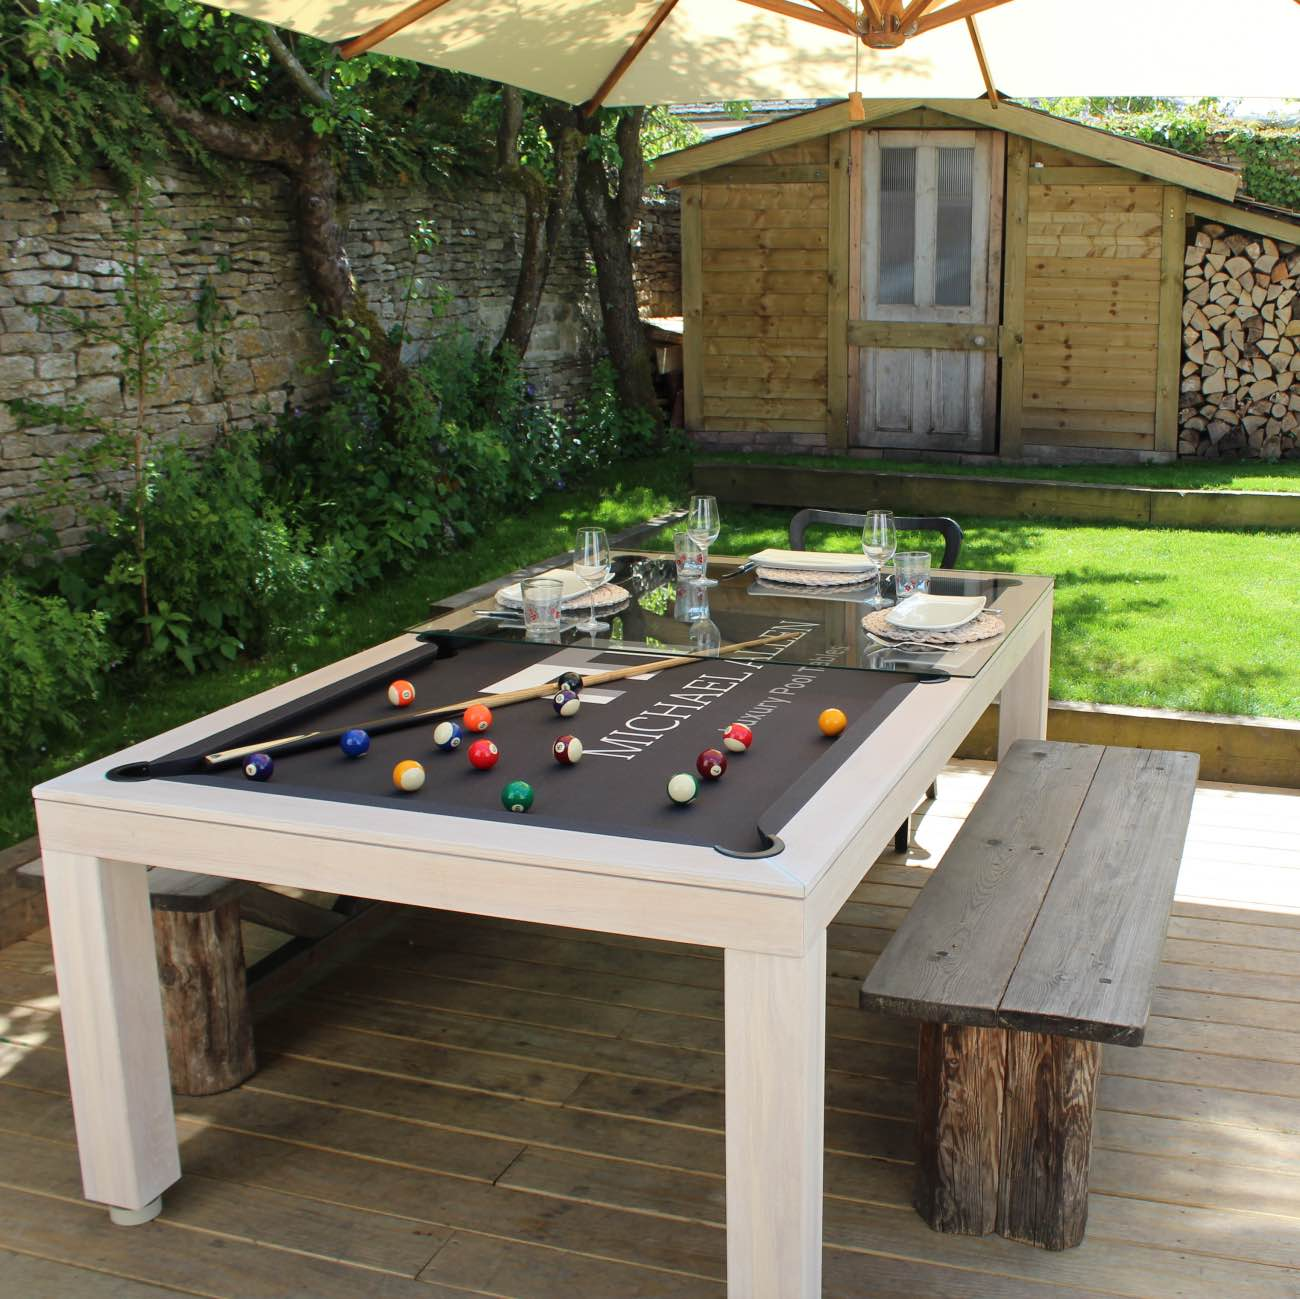 Outdoor Pool Table – Luxury Outdoor Living